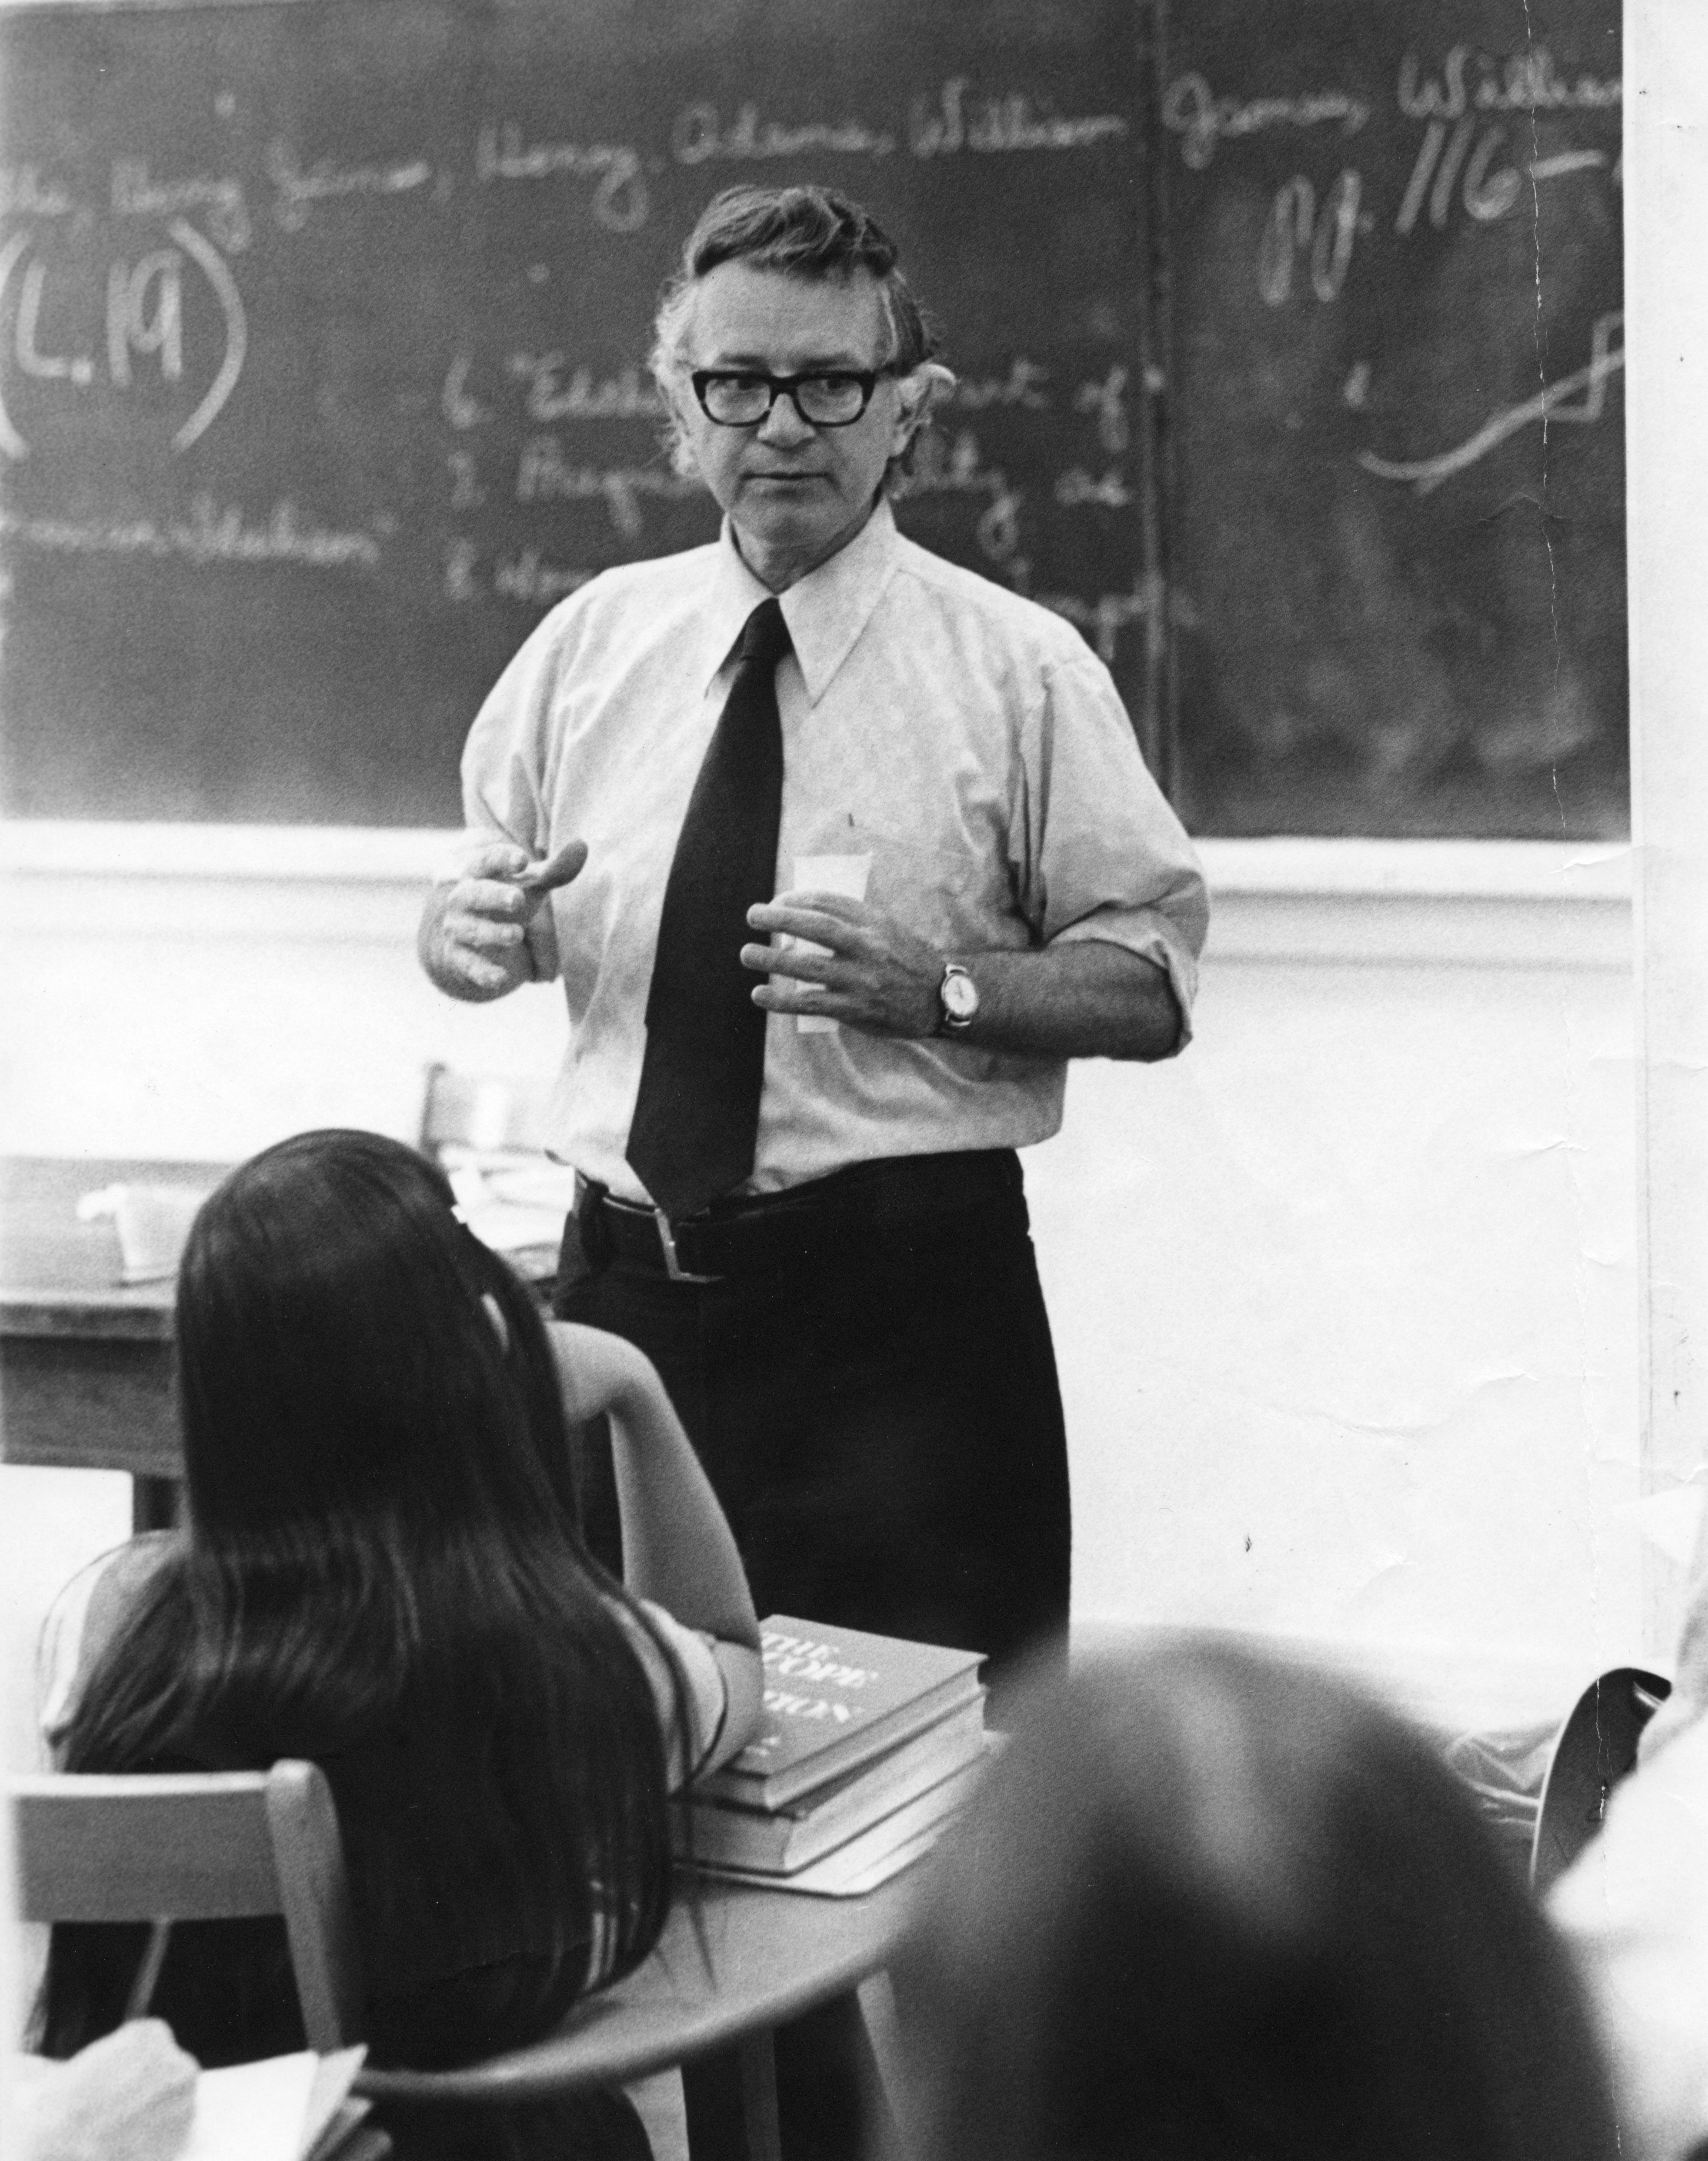 Guy Owen, author and North Carolina State University English professor, standing before a class.